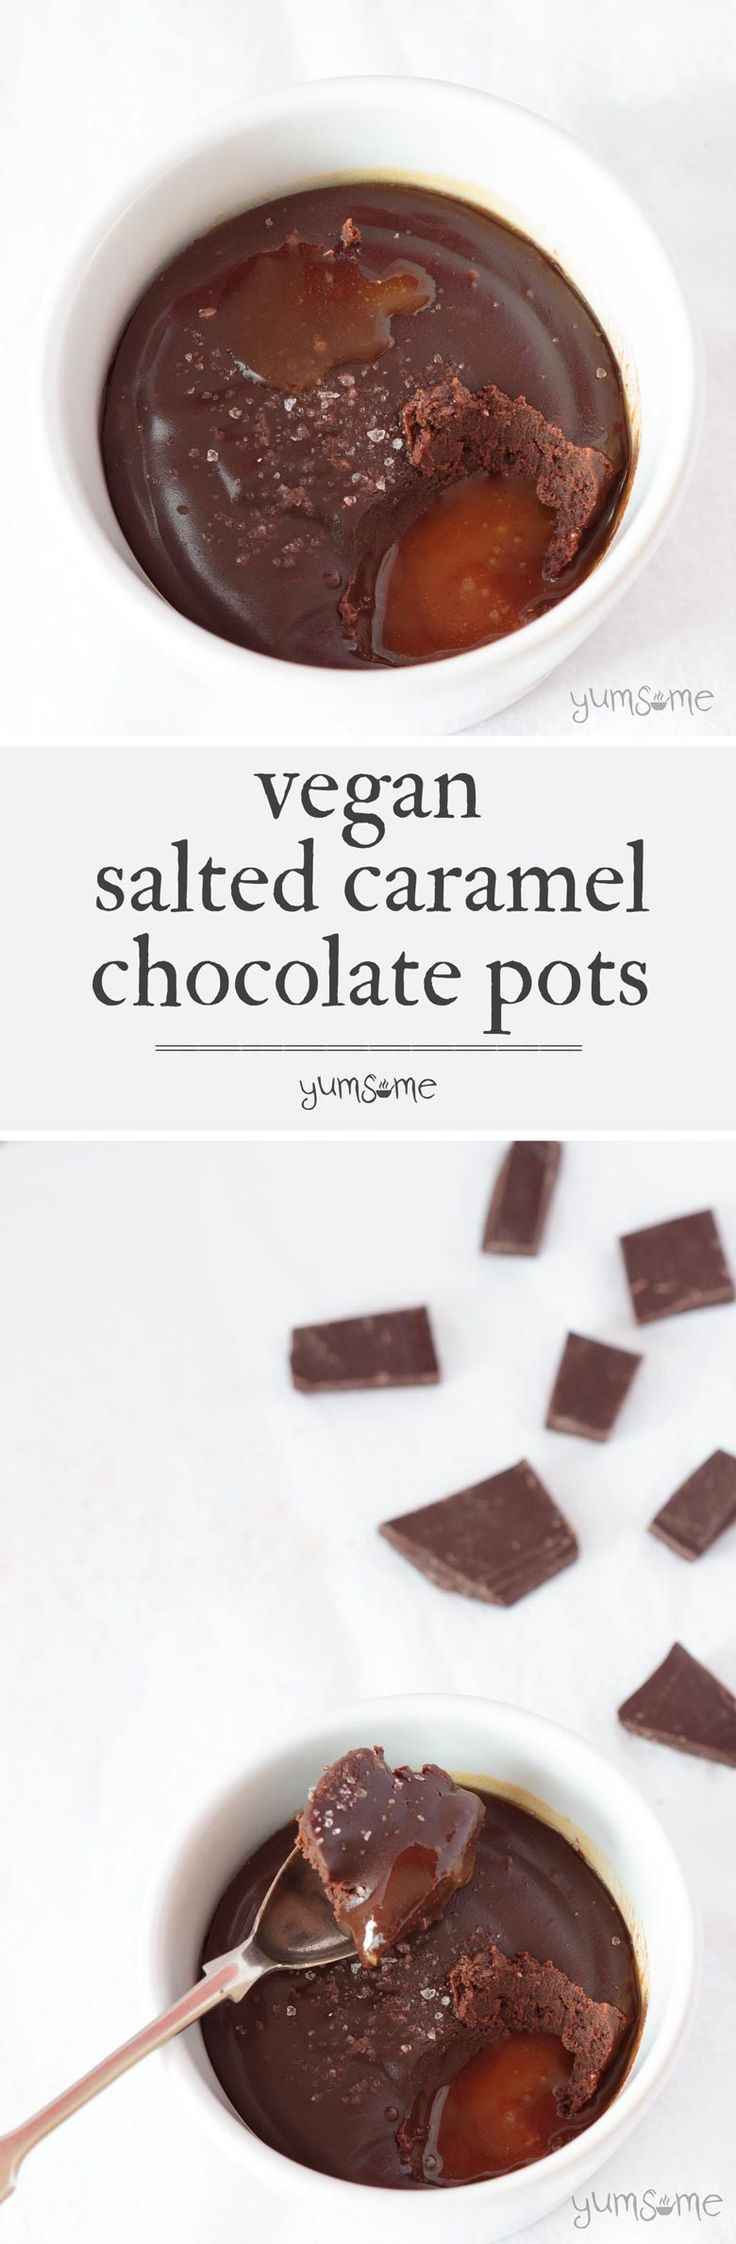 Vegan salted caramel chocolate pots; four ingredients, 10 minutes - all you need to make delicious pots of chocolatey delight! | yumsome.com via @yums0me